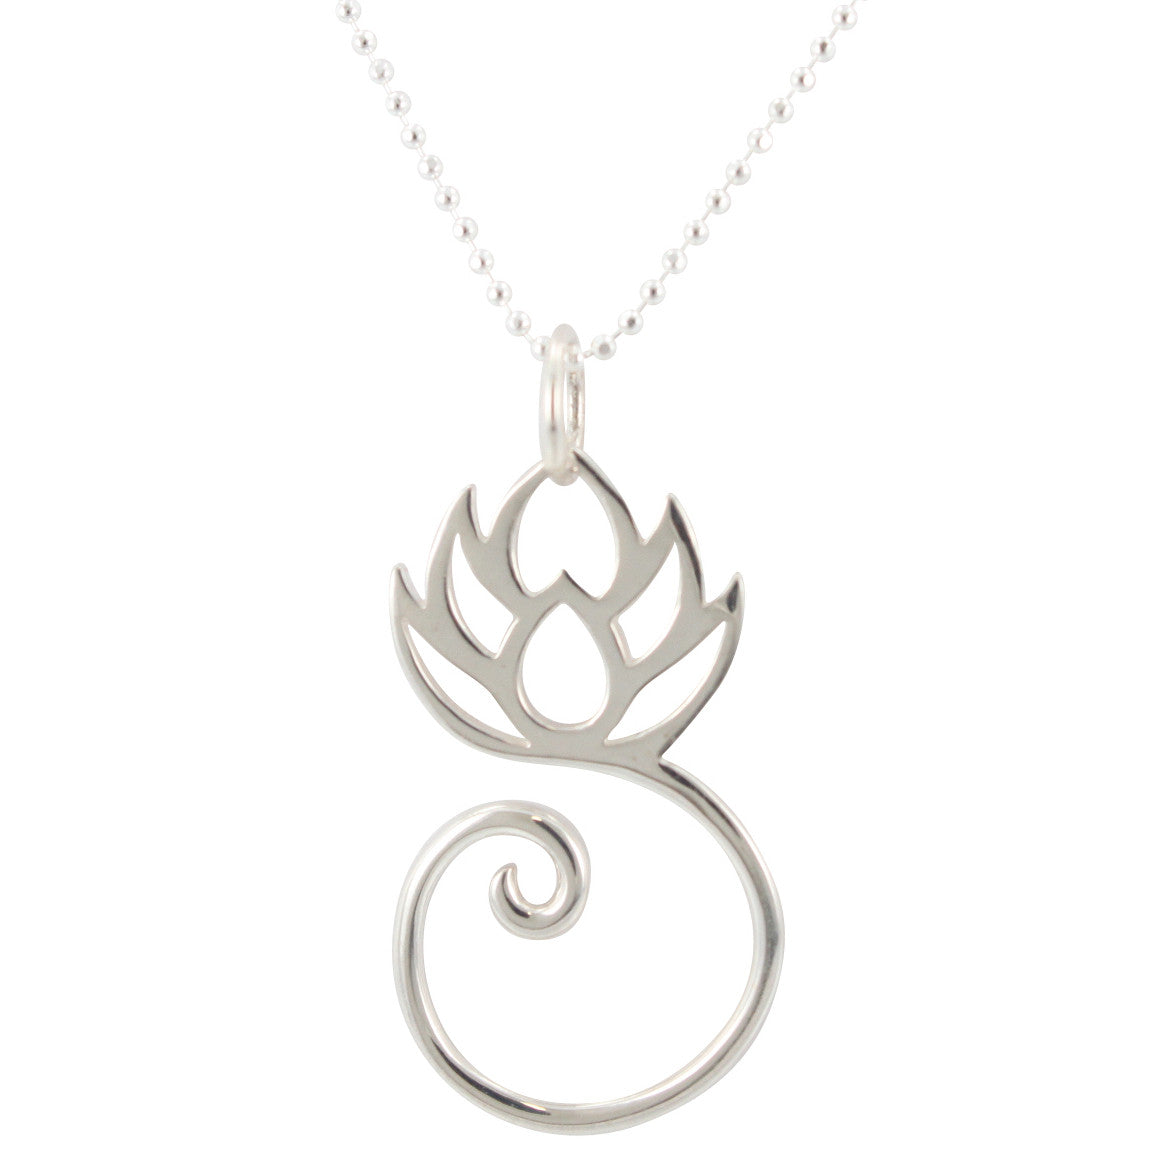 Sterling silver lotus flower charm holder necklace 8438 ss zoe sterling silver lotus flower charm holder necklace 8438 ss aloadofball Gallery